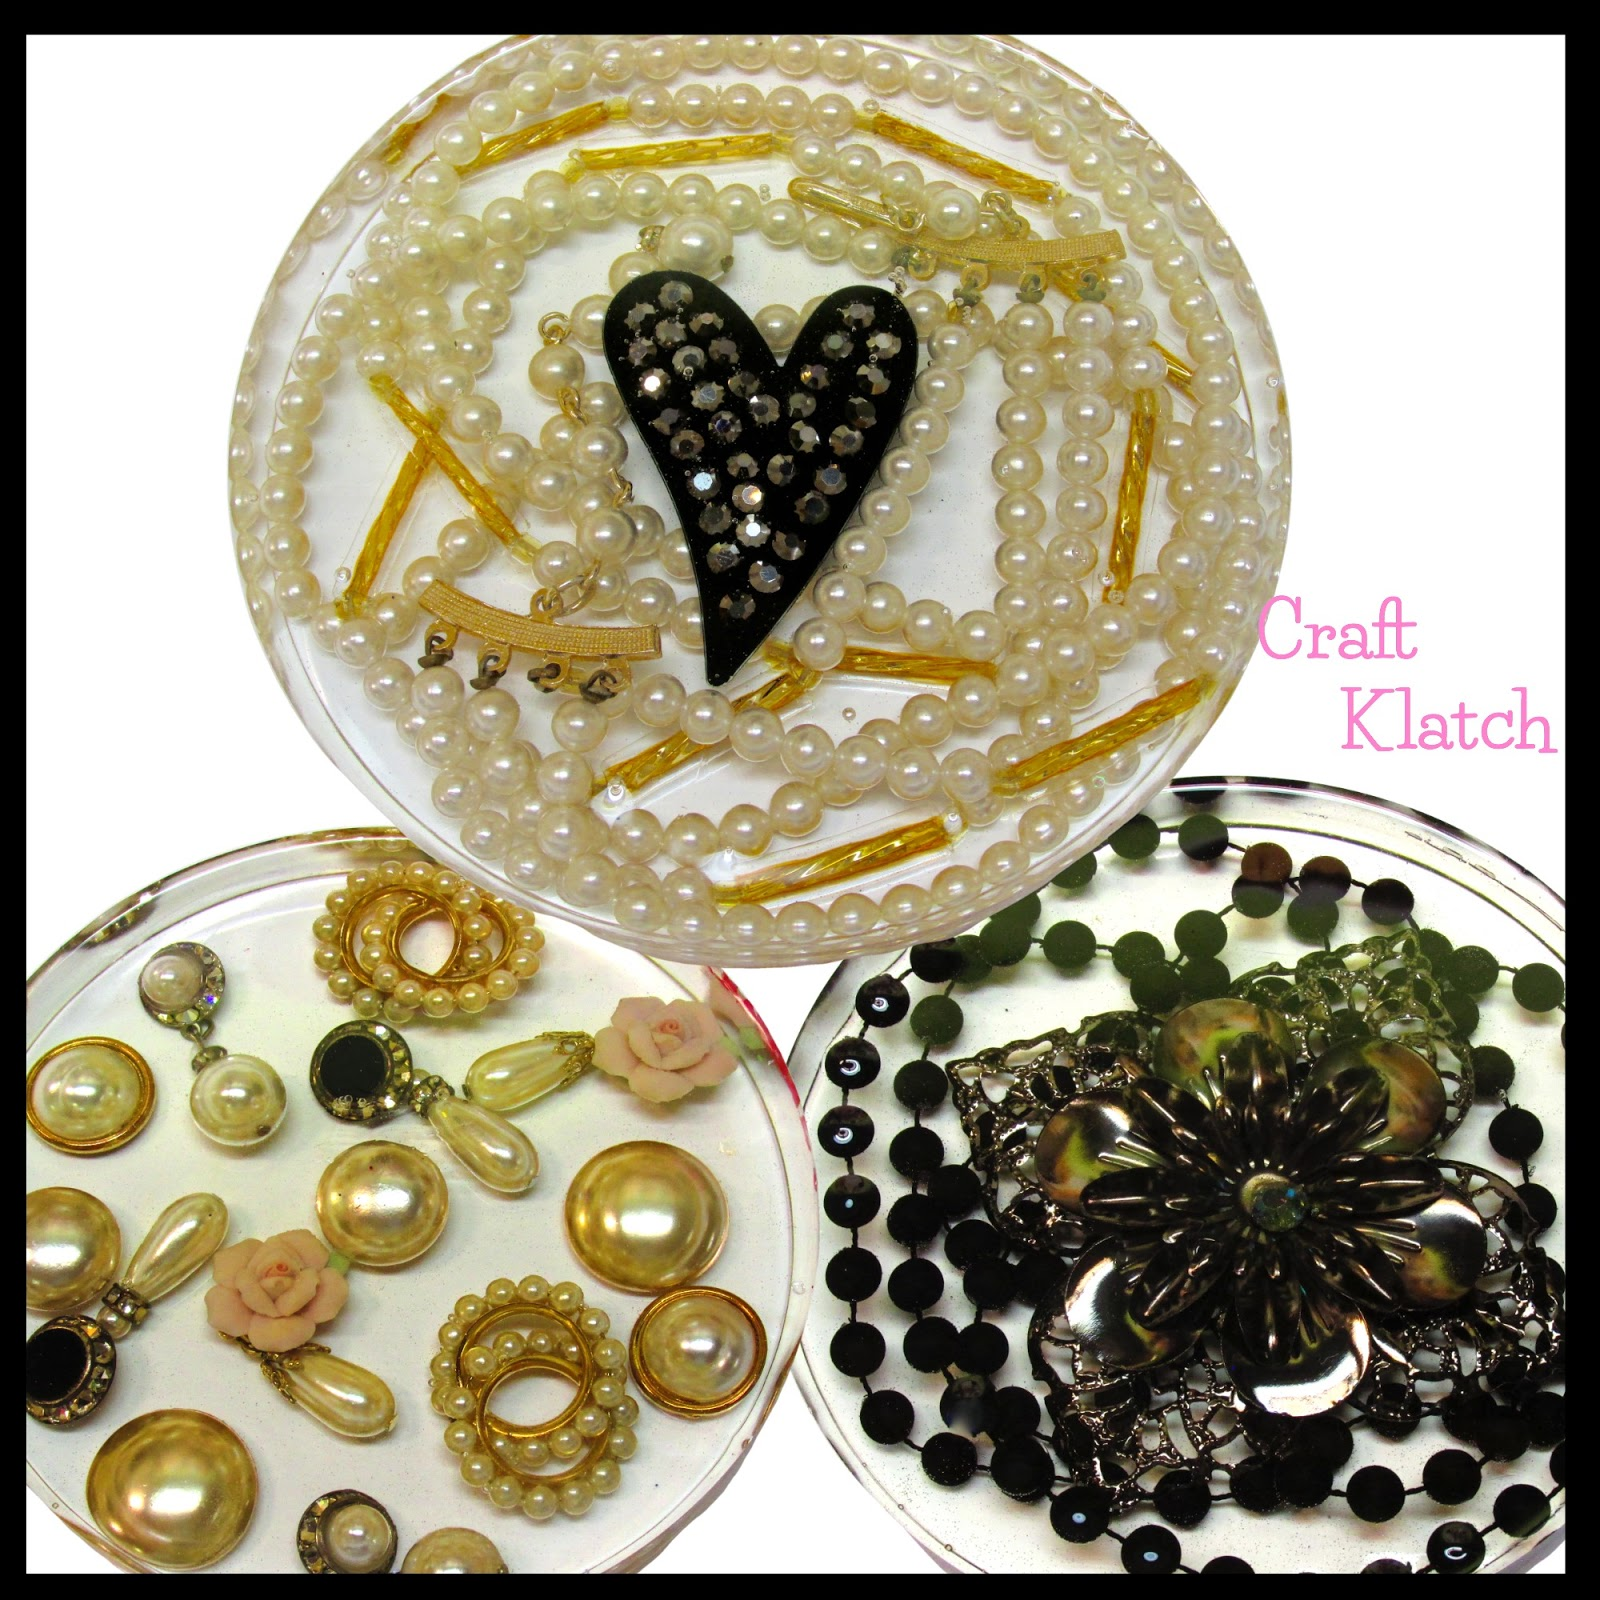 Craft Klatch Resin Jewelry Coasters Diy Project Another